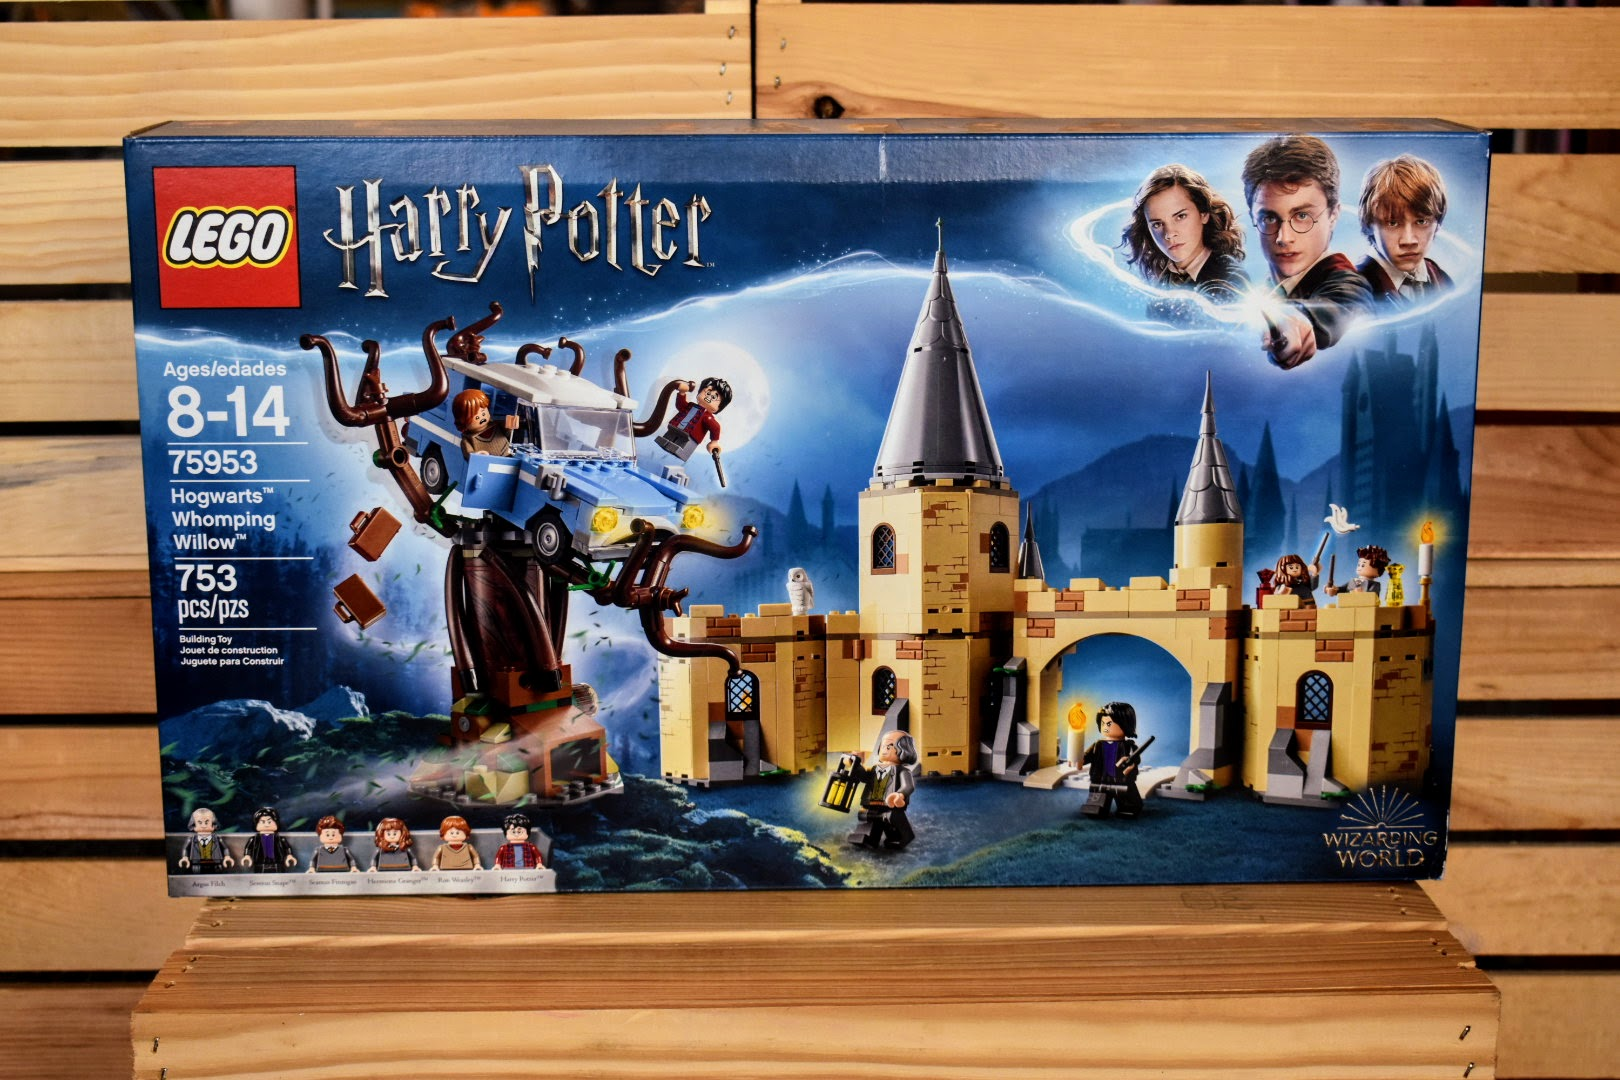 LEGO Harry Potter Hogwarts Whomping Willow